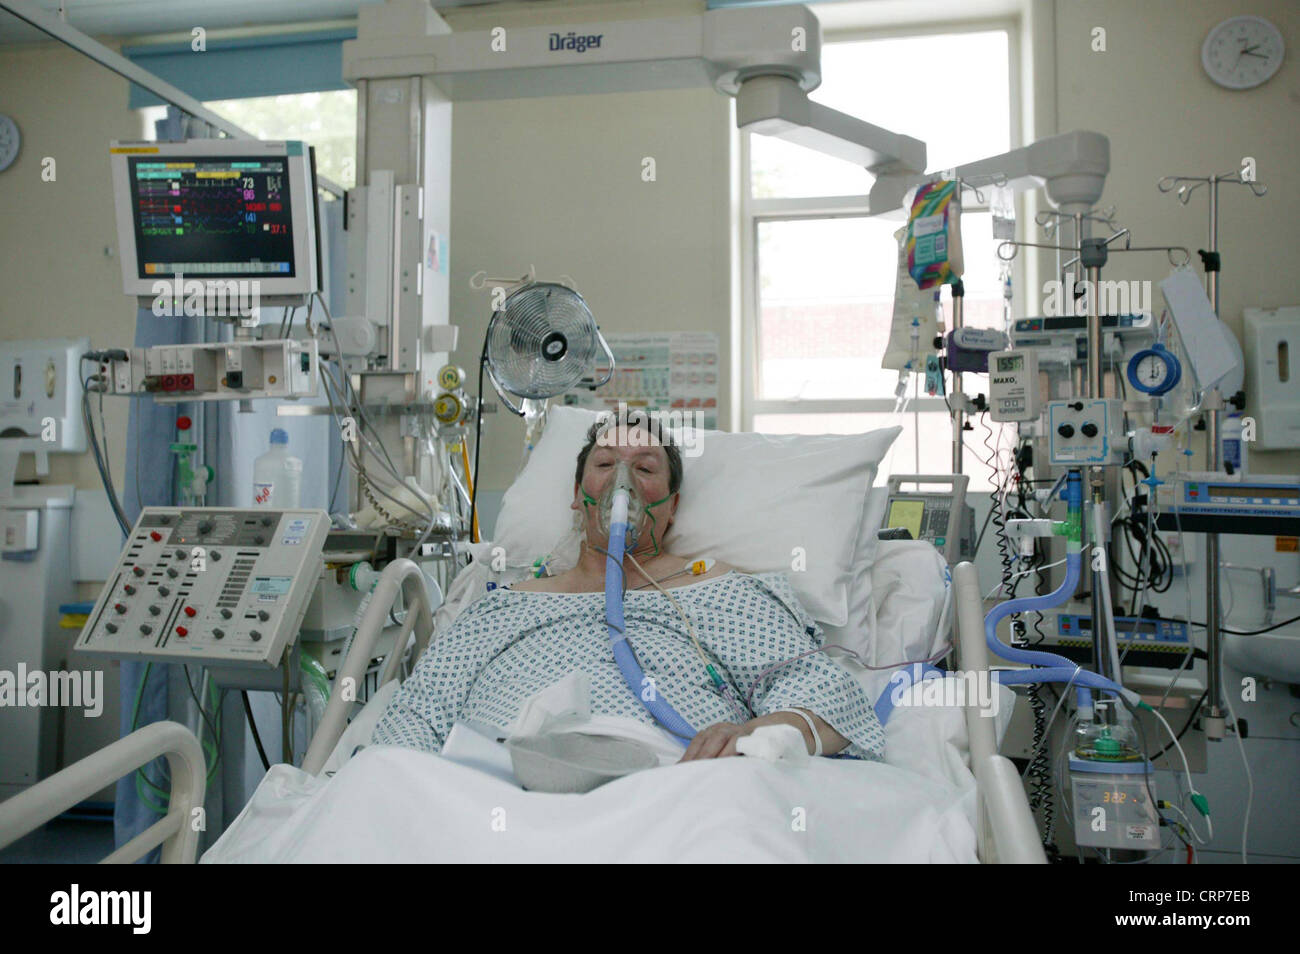 File phase diagram of oxygen  1975 as well Proppr Randomized Clinical Trial furthermore Breweries Ozone further Stock Photo Patient In Hospital Bed After Heart Attack 49046659 in addition Antibiotics Flow Sheet Final. on oxygen administration